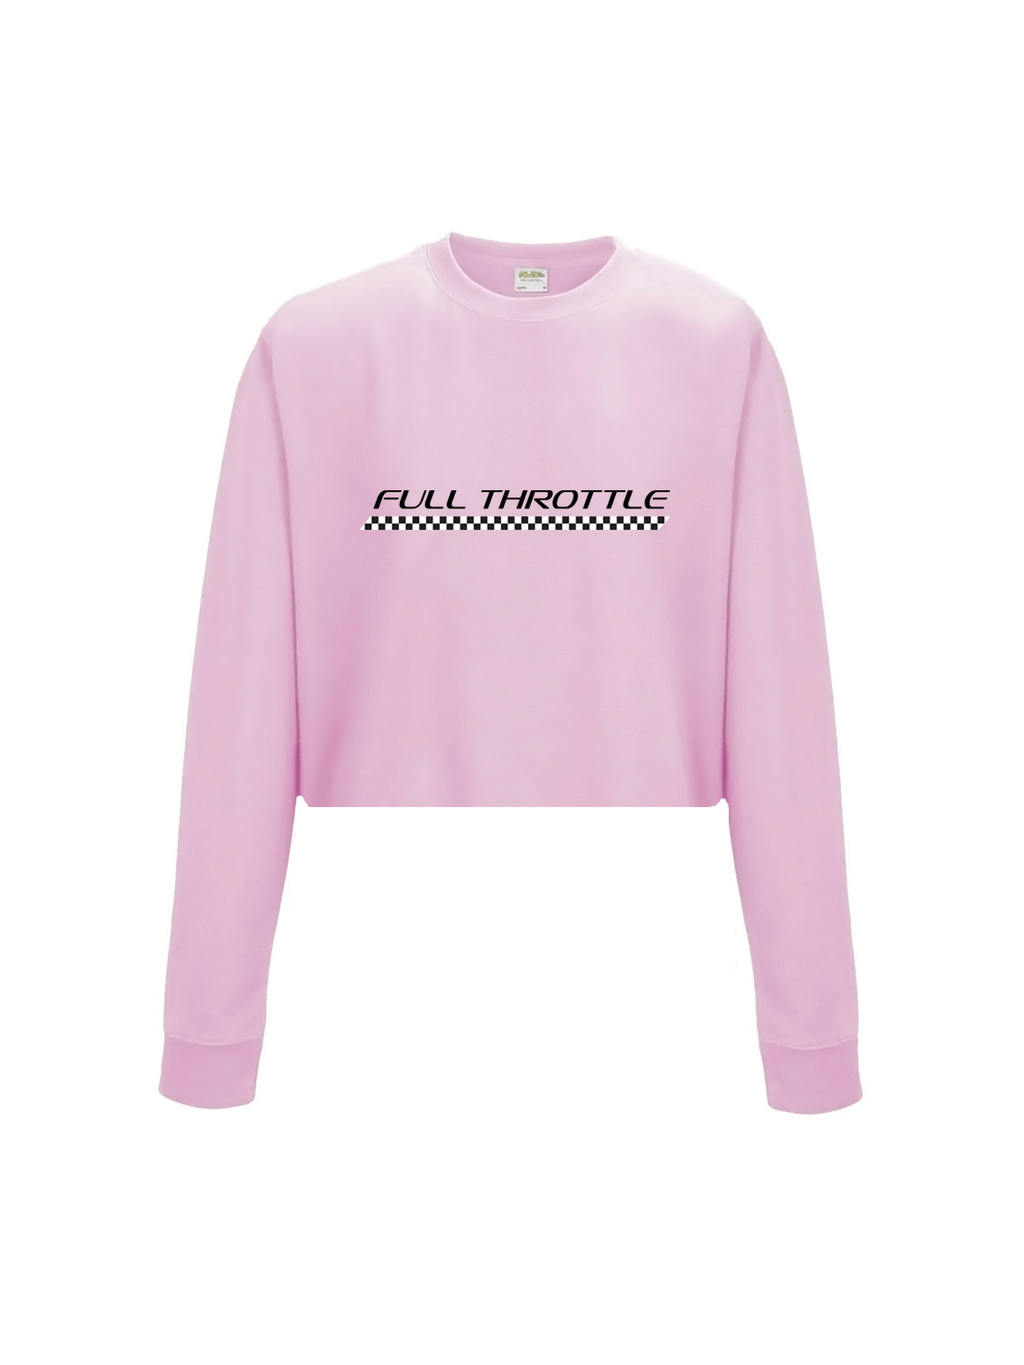 FULL THROTTLE cropped sweatshirt in pink